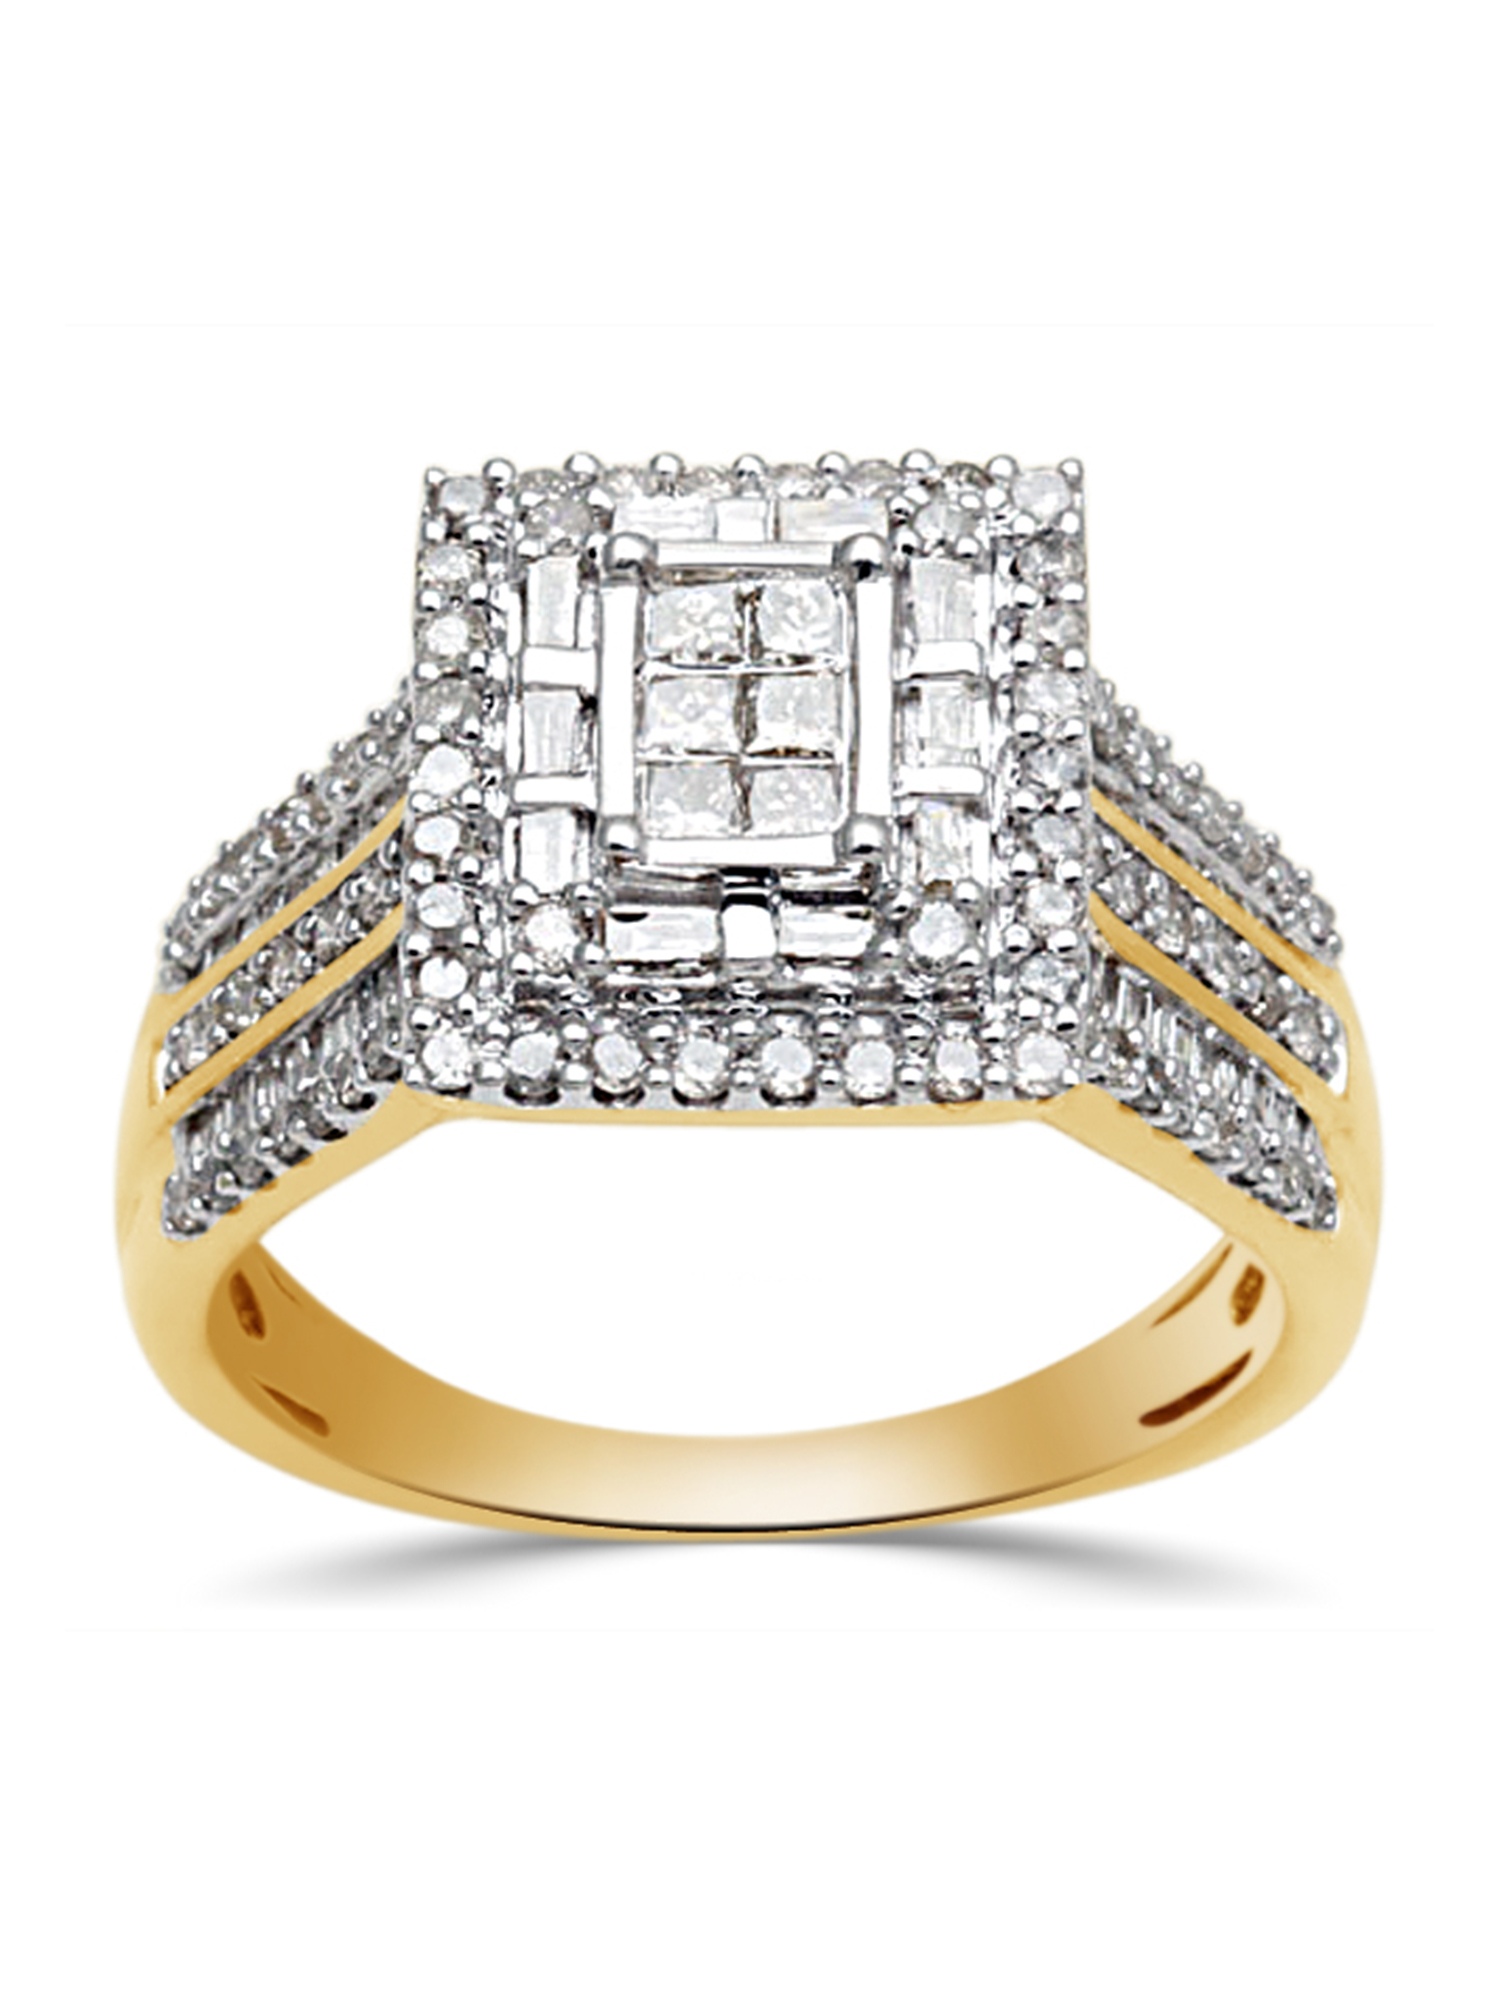 1 Carat T.W. Princess, Baguette and Round-Cut Diamond 10kt Yellow Gold Engagement Ring